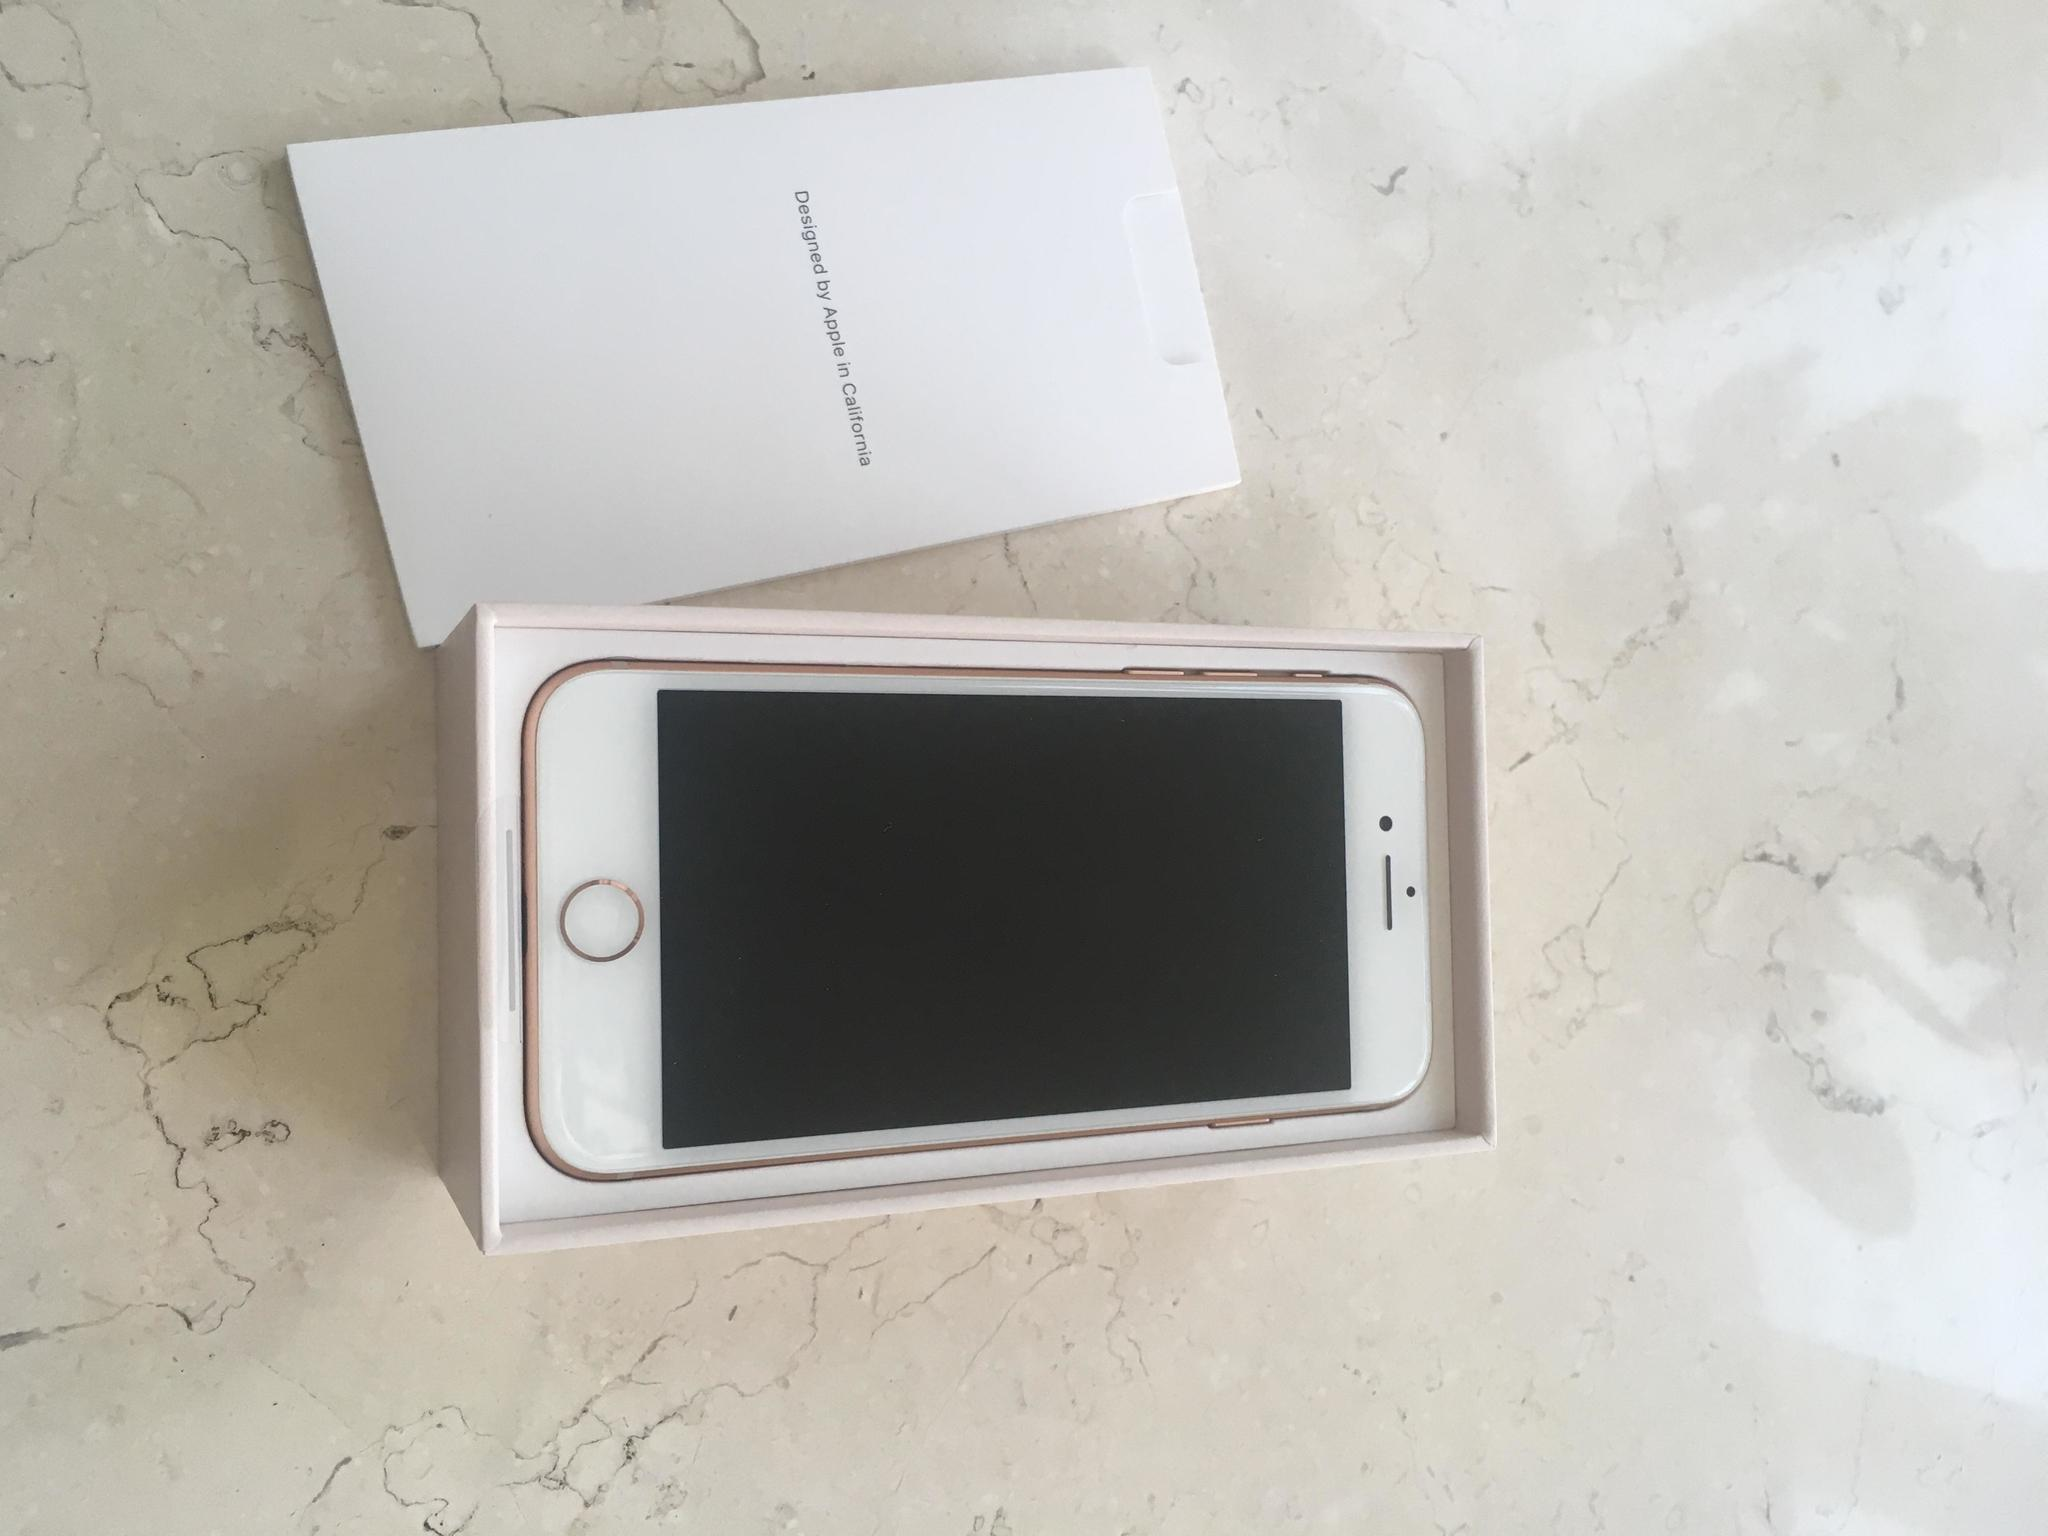 NEW iPhone 8 Gold, 256 GB NEVER USED